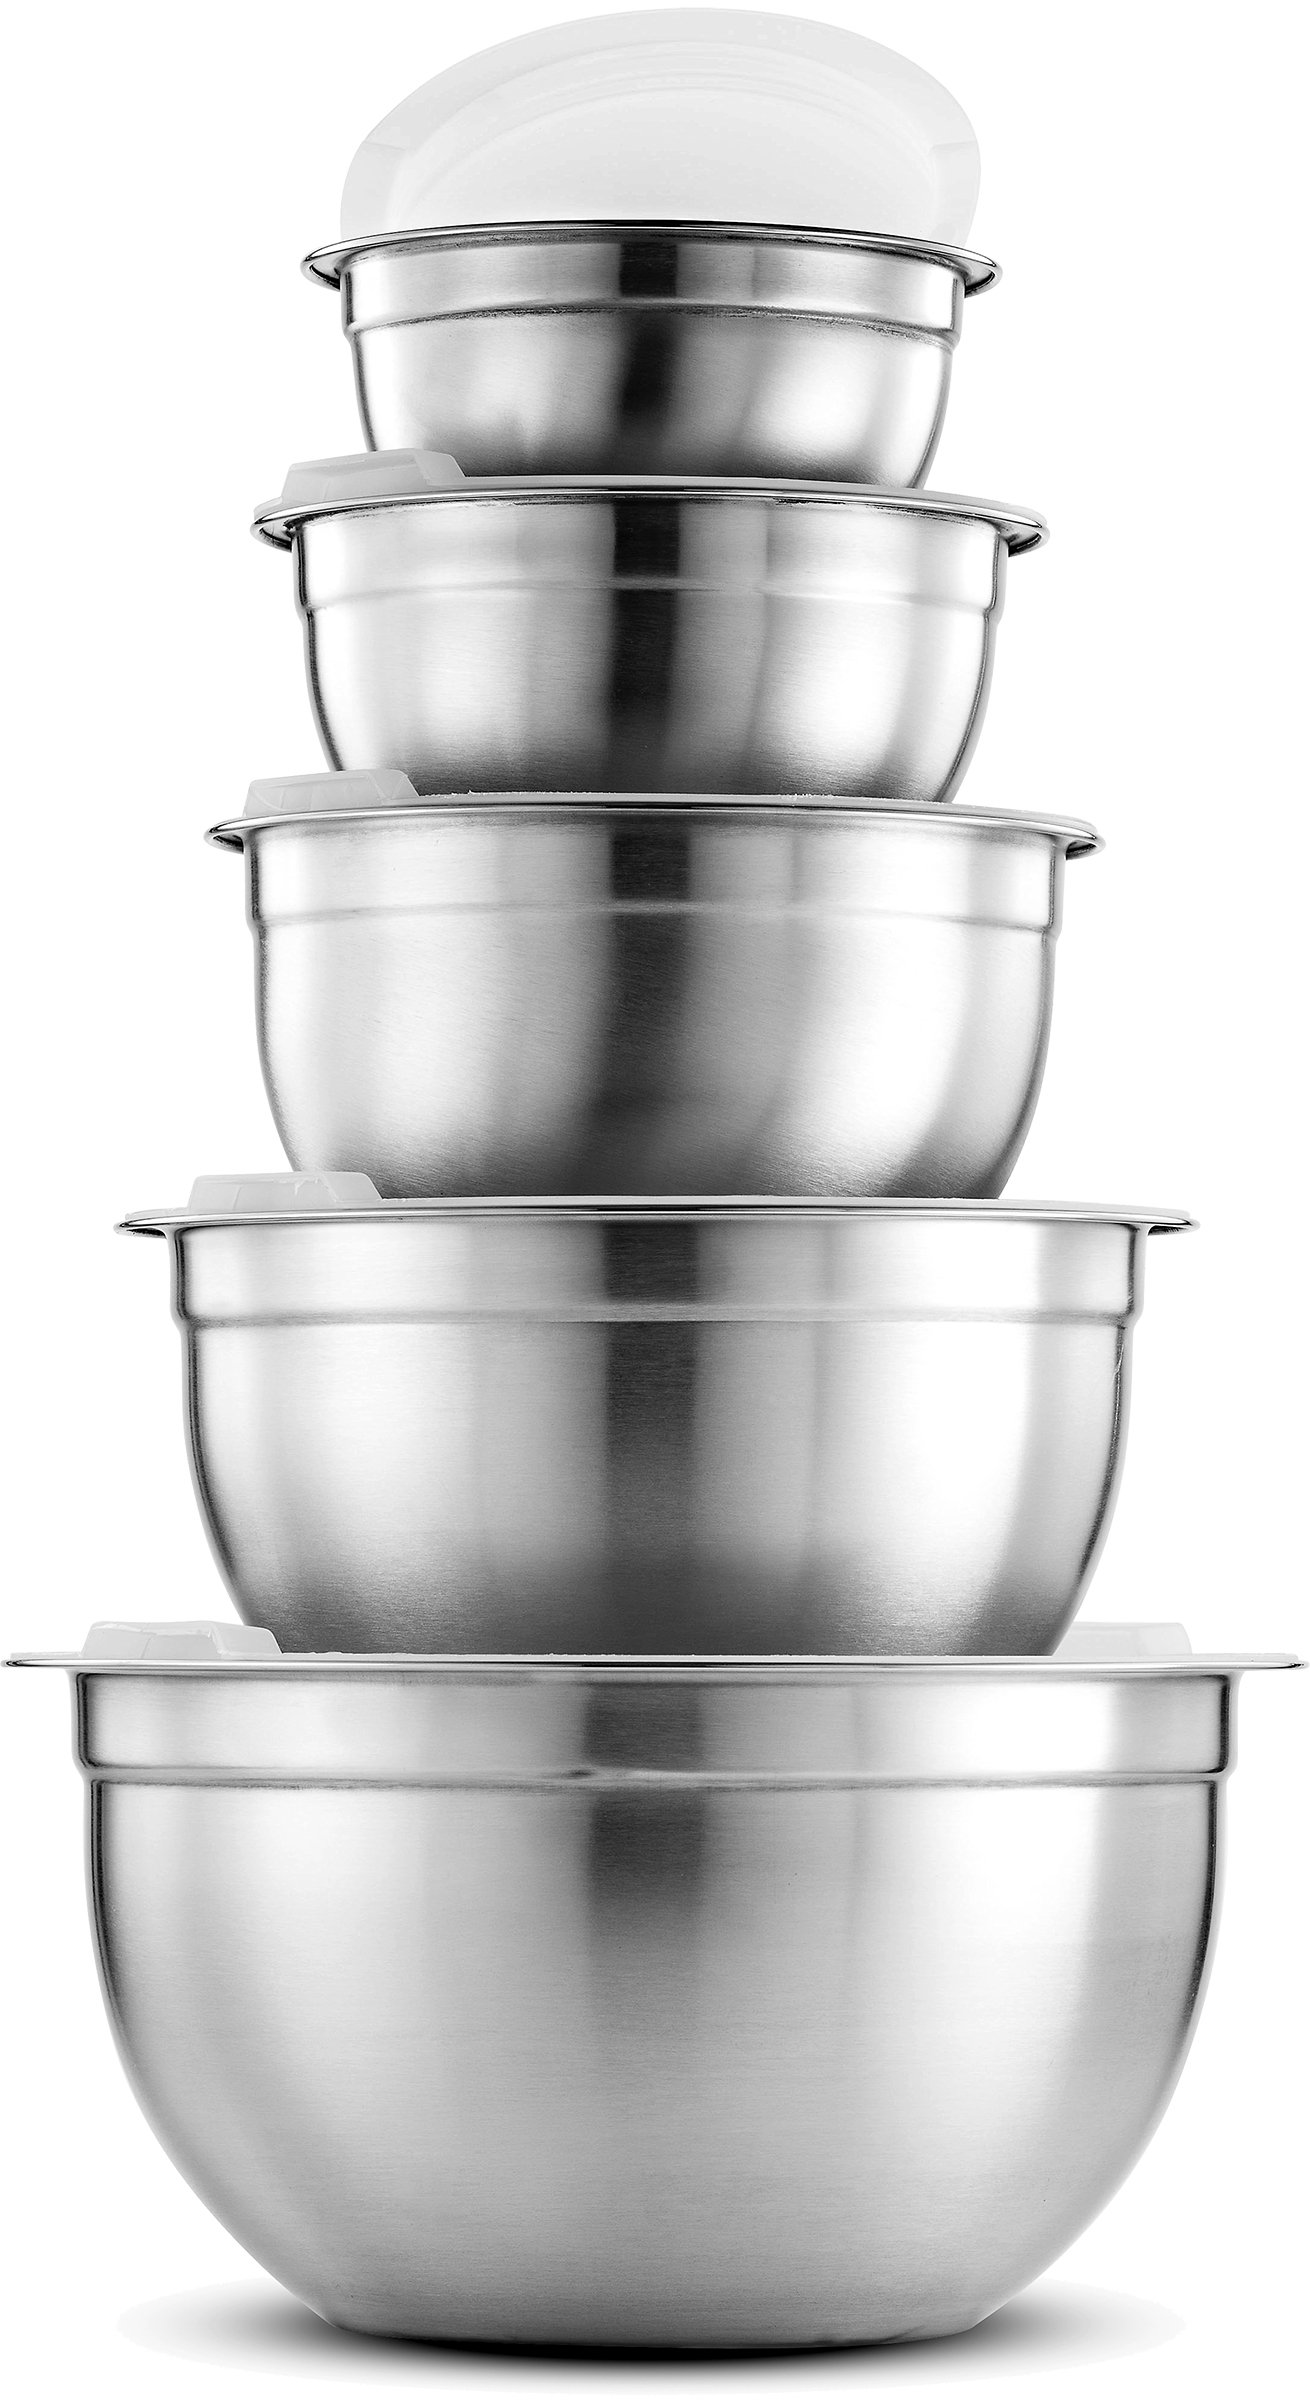 FineDine Premium Various Sizes Stainless Steel Mixing Bowl (10 Piece) With Airtight Lids, Flat Base For Stability & Easy Grip Whisking, Mixing, Beating Bowls Nesting & Stackable for Convenient Storage